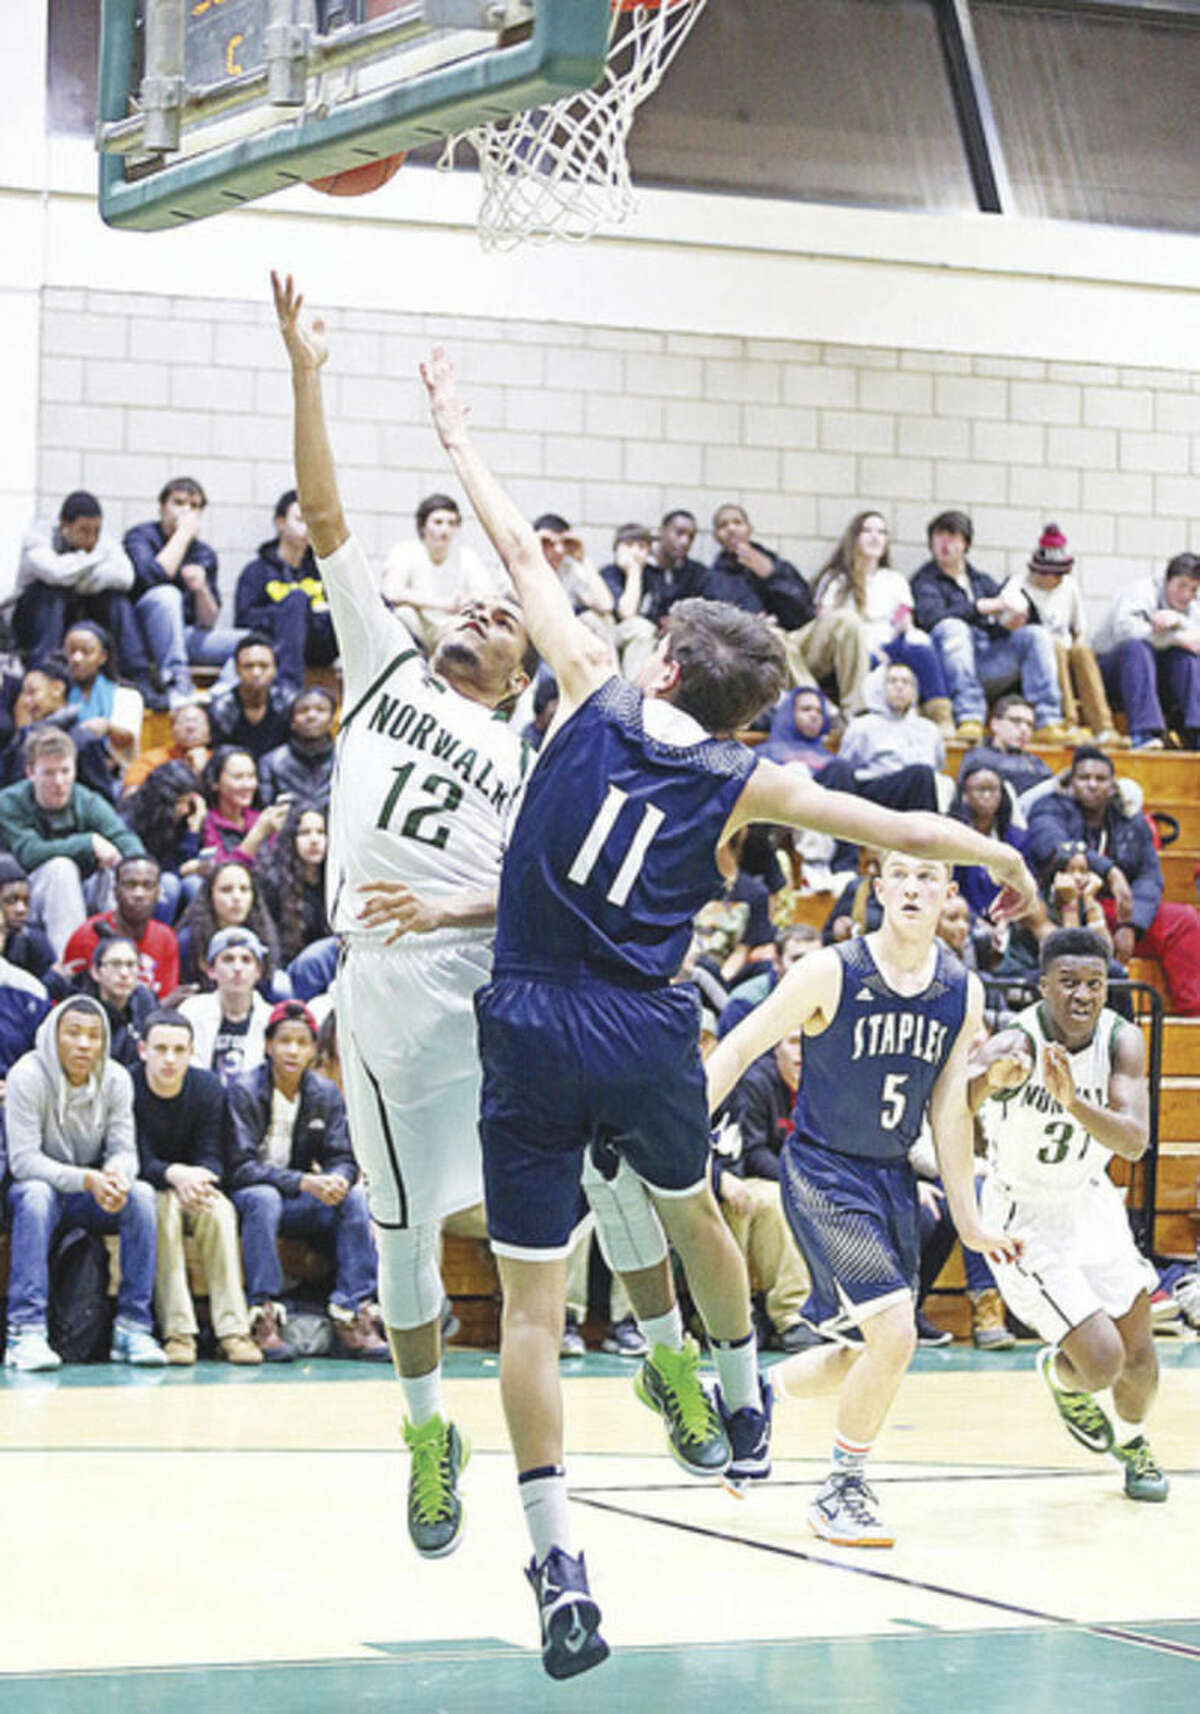 Hour photo/Danielle Calloway Norwalk's Tommy Barrett goes up for a layup while Staples' Harry Kohn tries to defend. Norwalk defeated Staples 70-60 on Monday night.